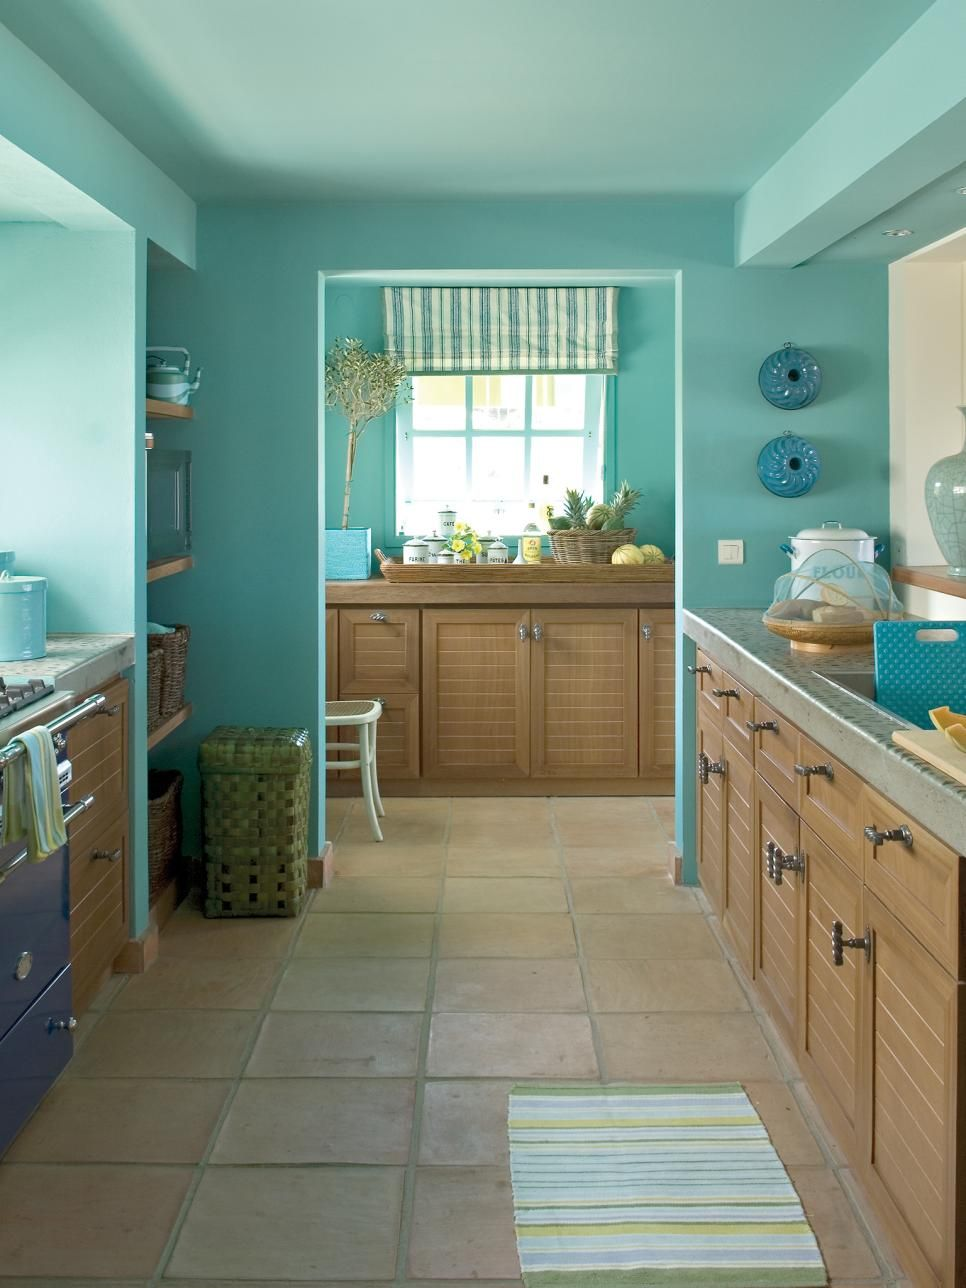 on ue caribbean with maple cabinets kitchen wall colors